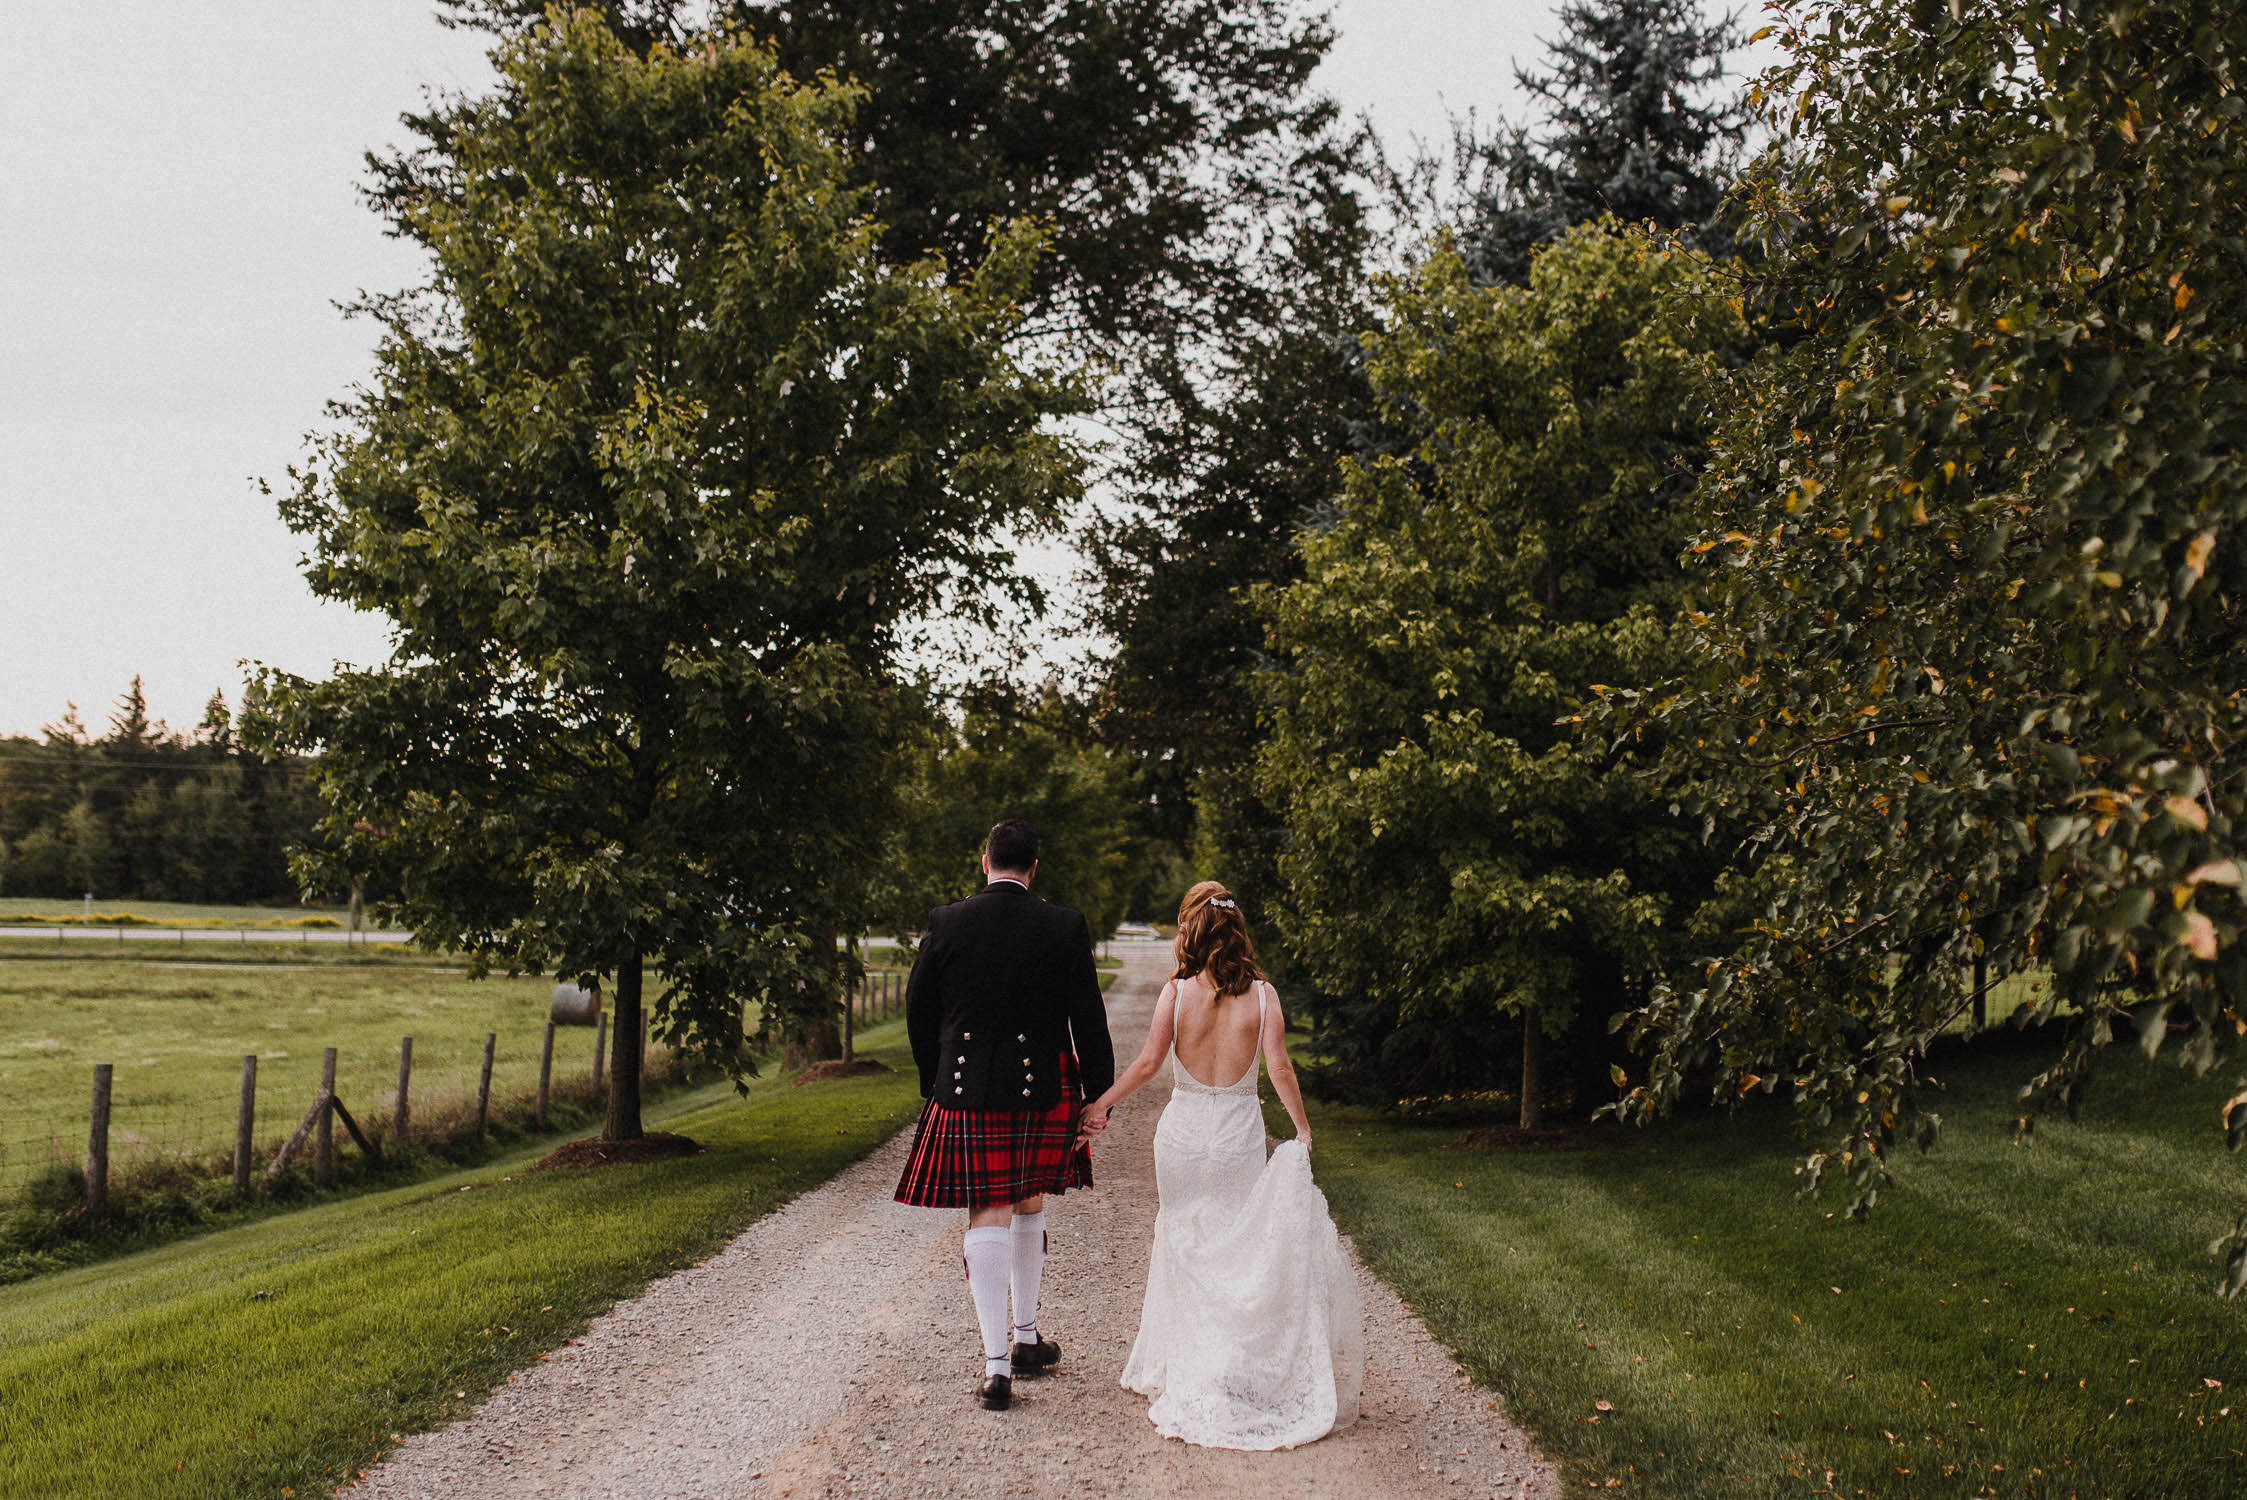 The bride and groom walk down a tree-lined path on the farm after their wedding ceremony at Cambium Farm.